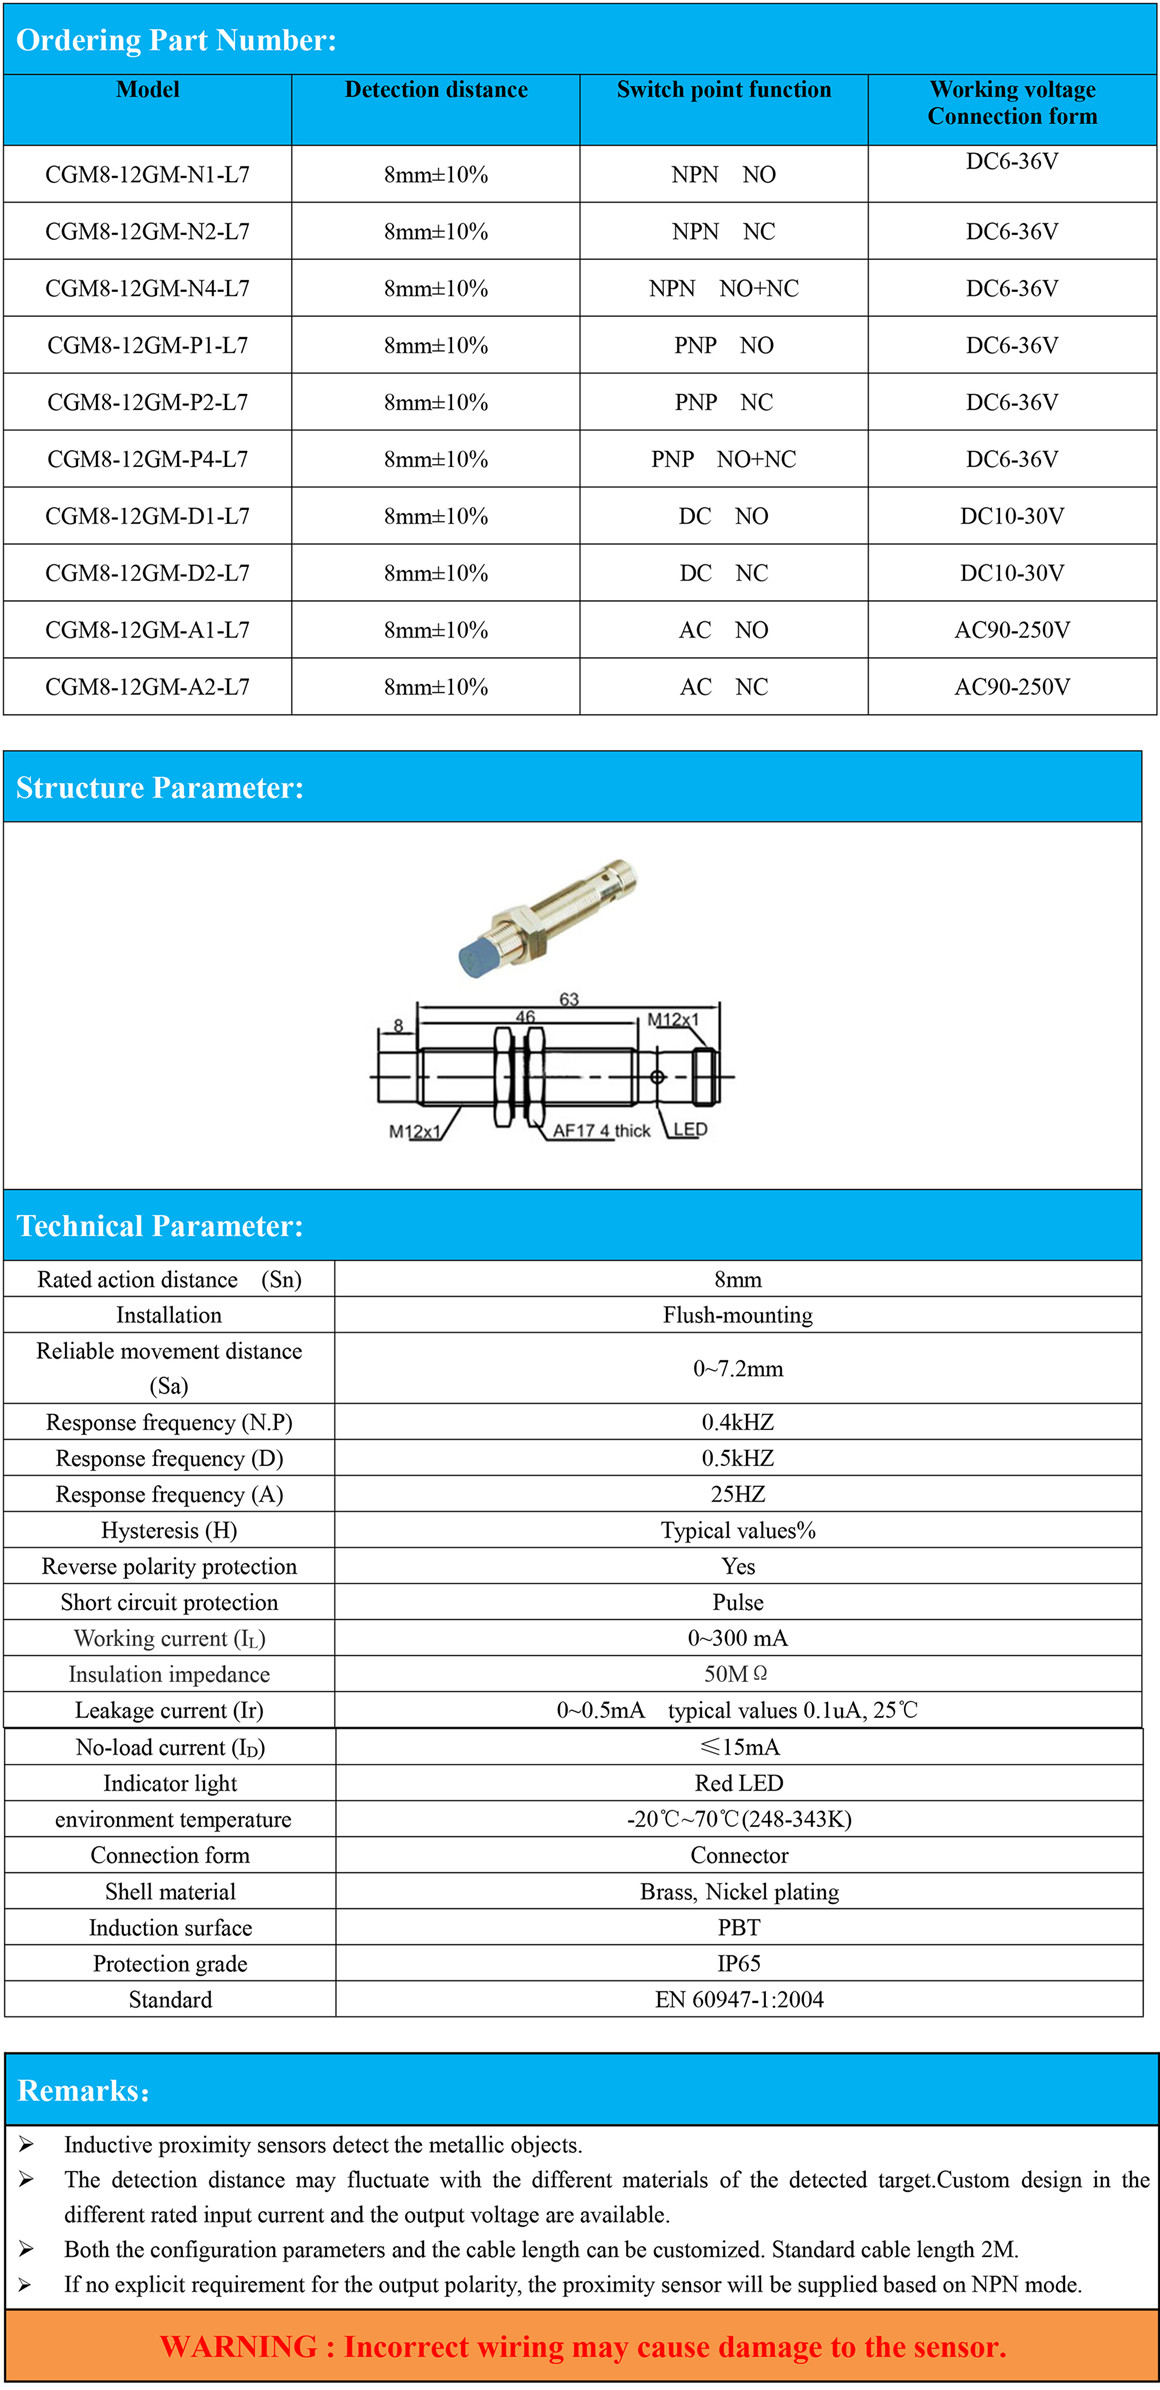 M12 Inductive Proximity Sensor with Detection Distance Sn 4mm PNP NPN